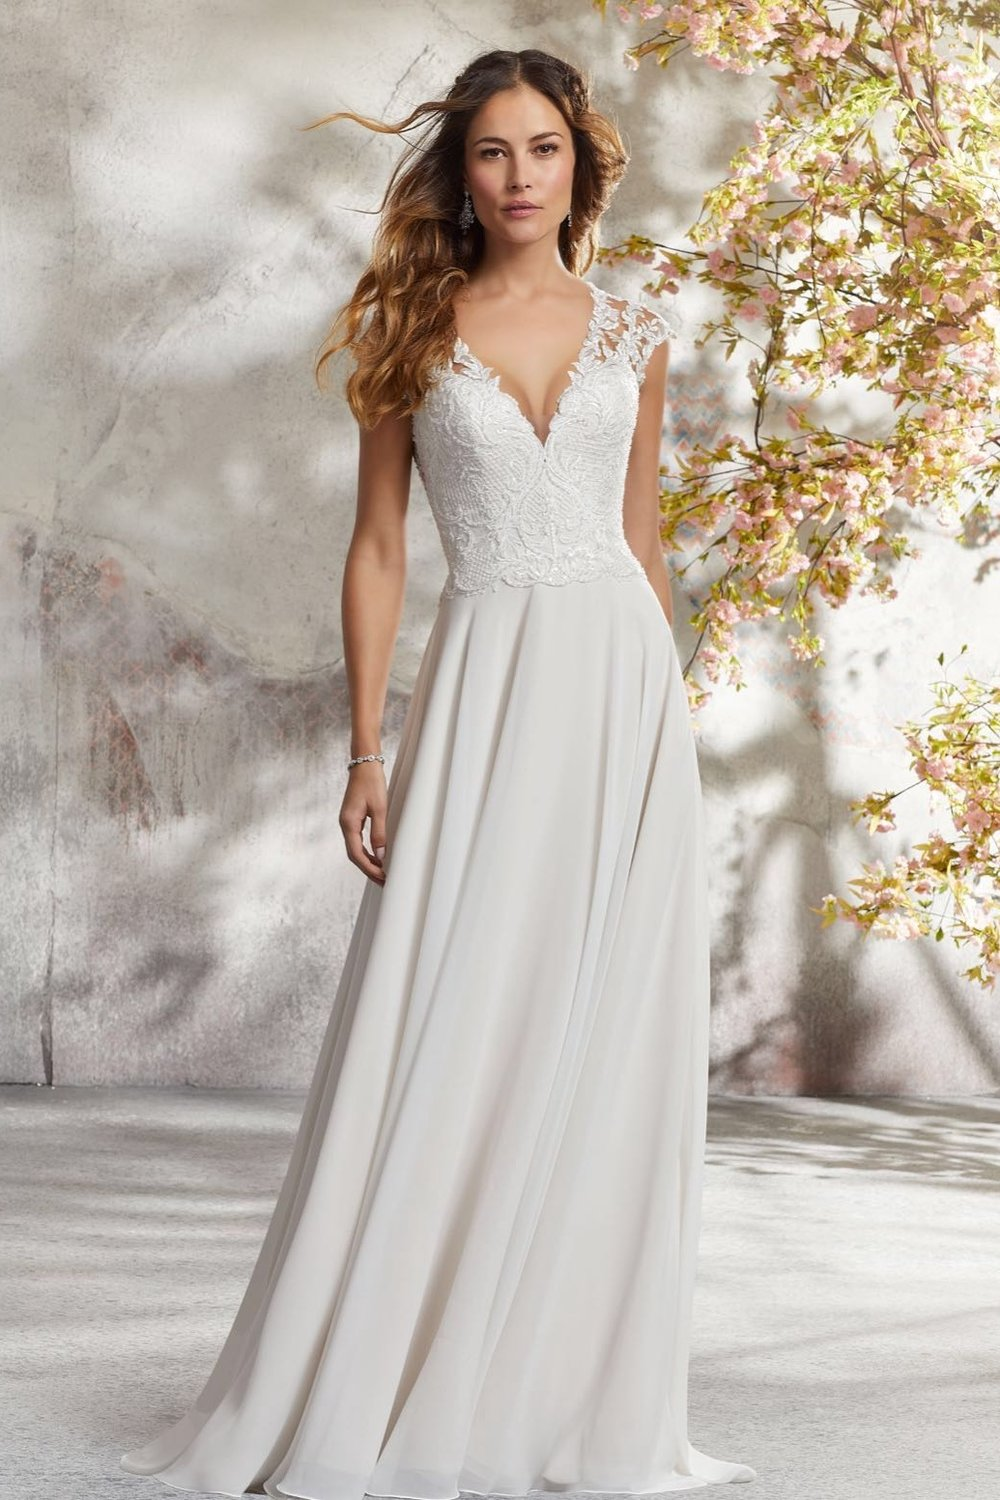 Mori Lee 5694 Ivory Champagne // Retail Price $899| Our Price $629